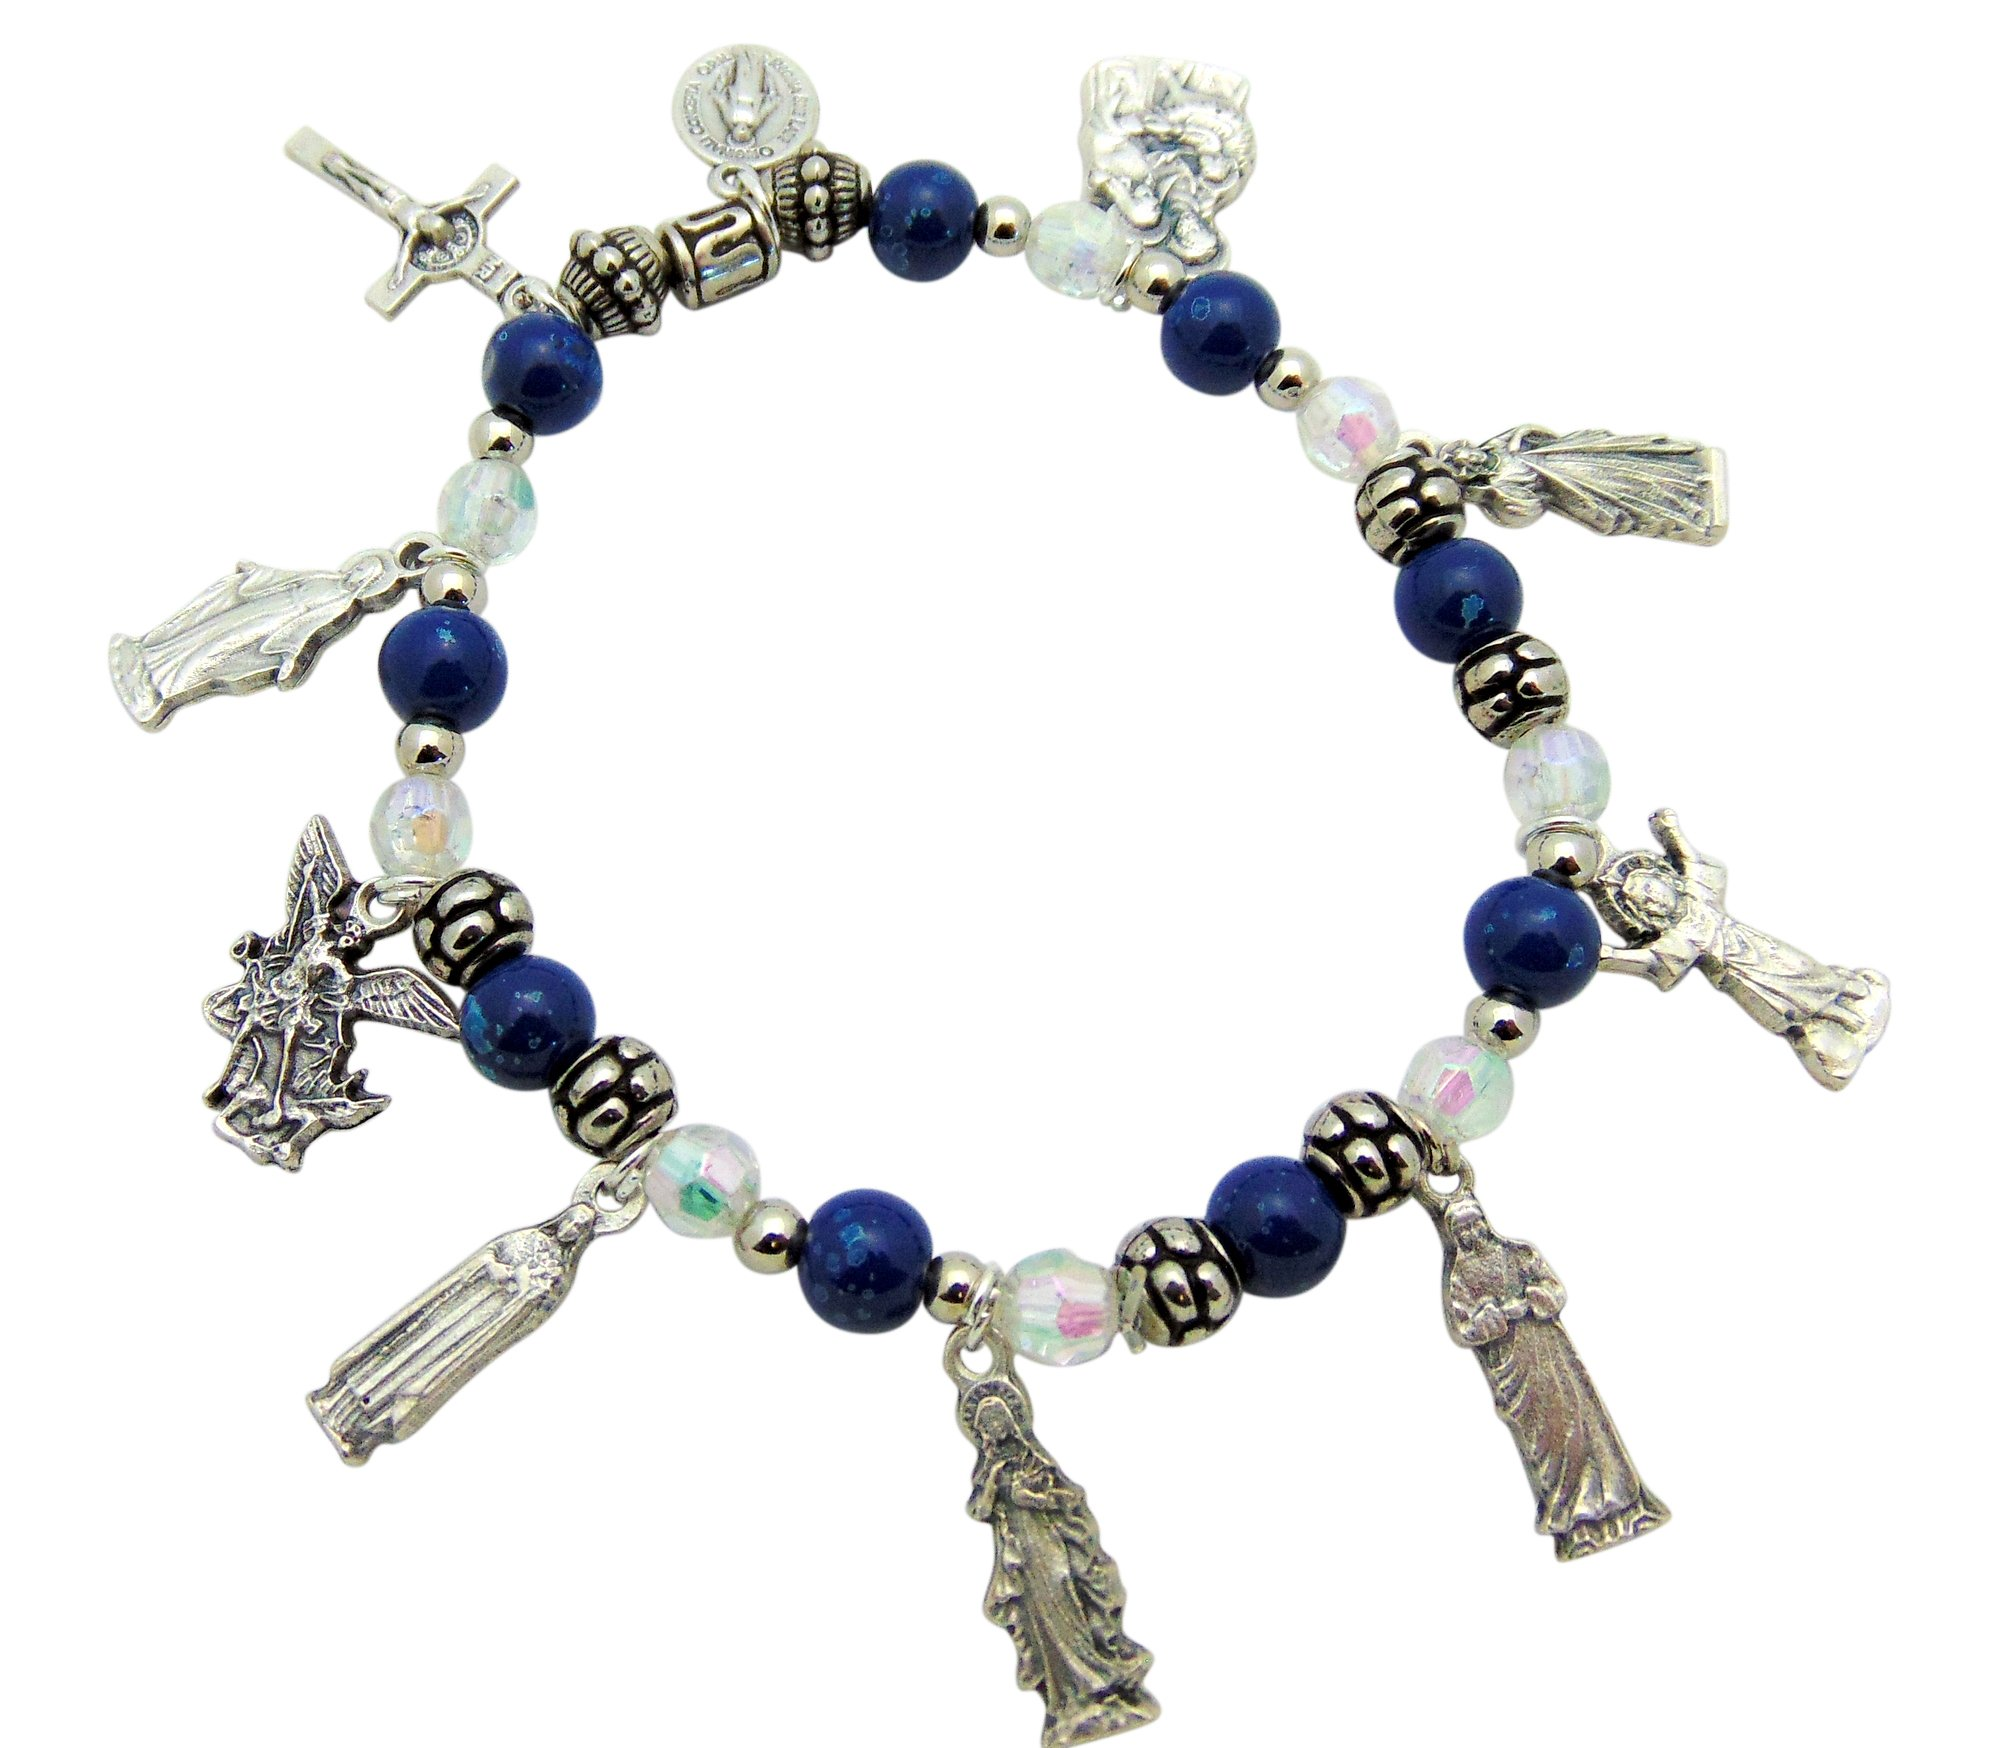 Westman Works Catholic Saints Charm Bracelet with Glass Beads and Metal Pendants with a Organza Gift Bag